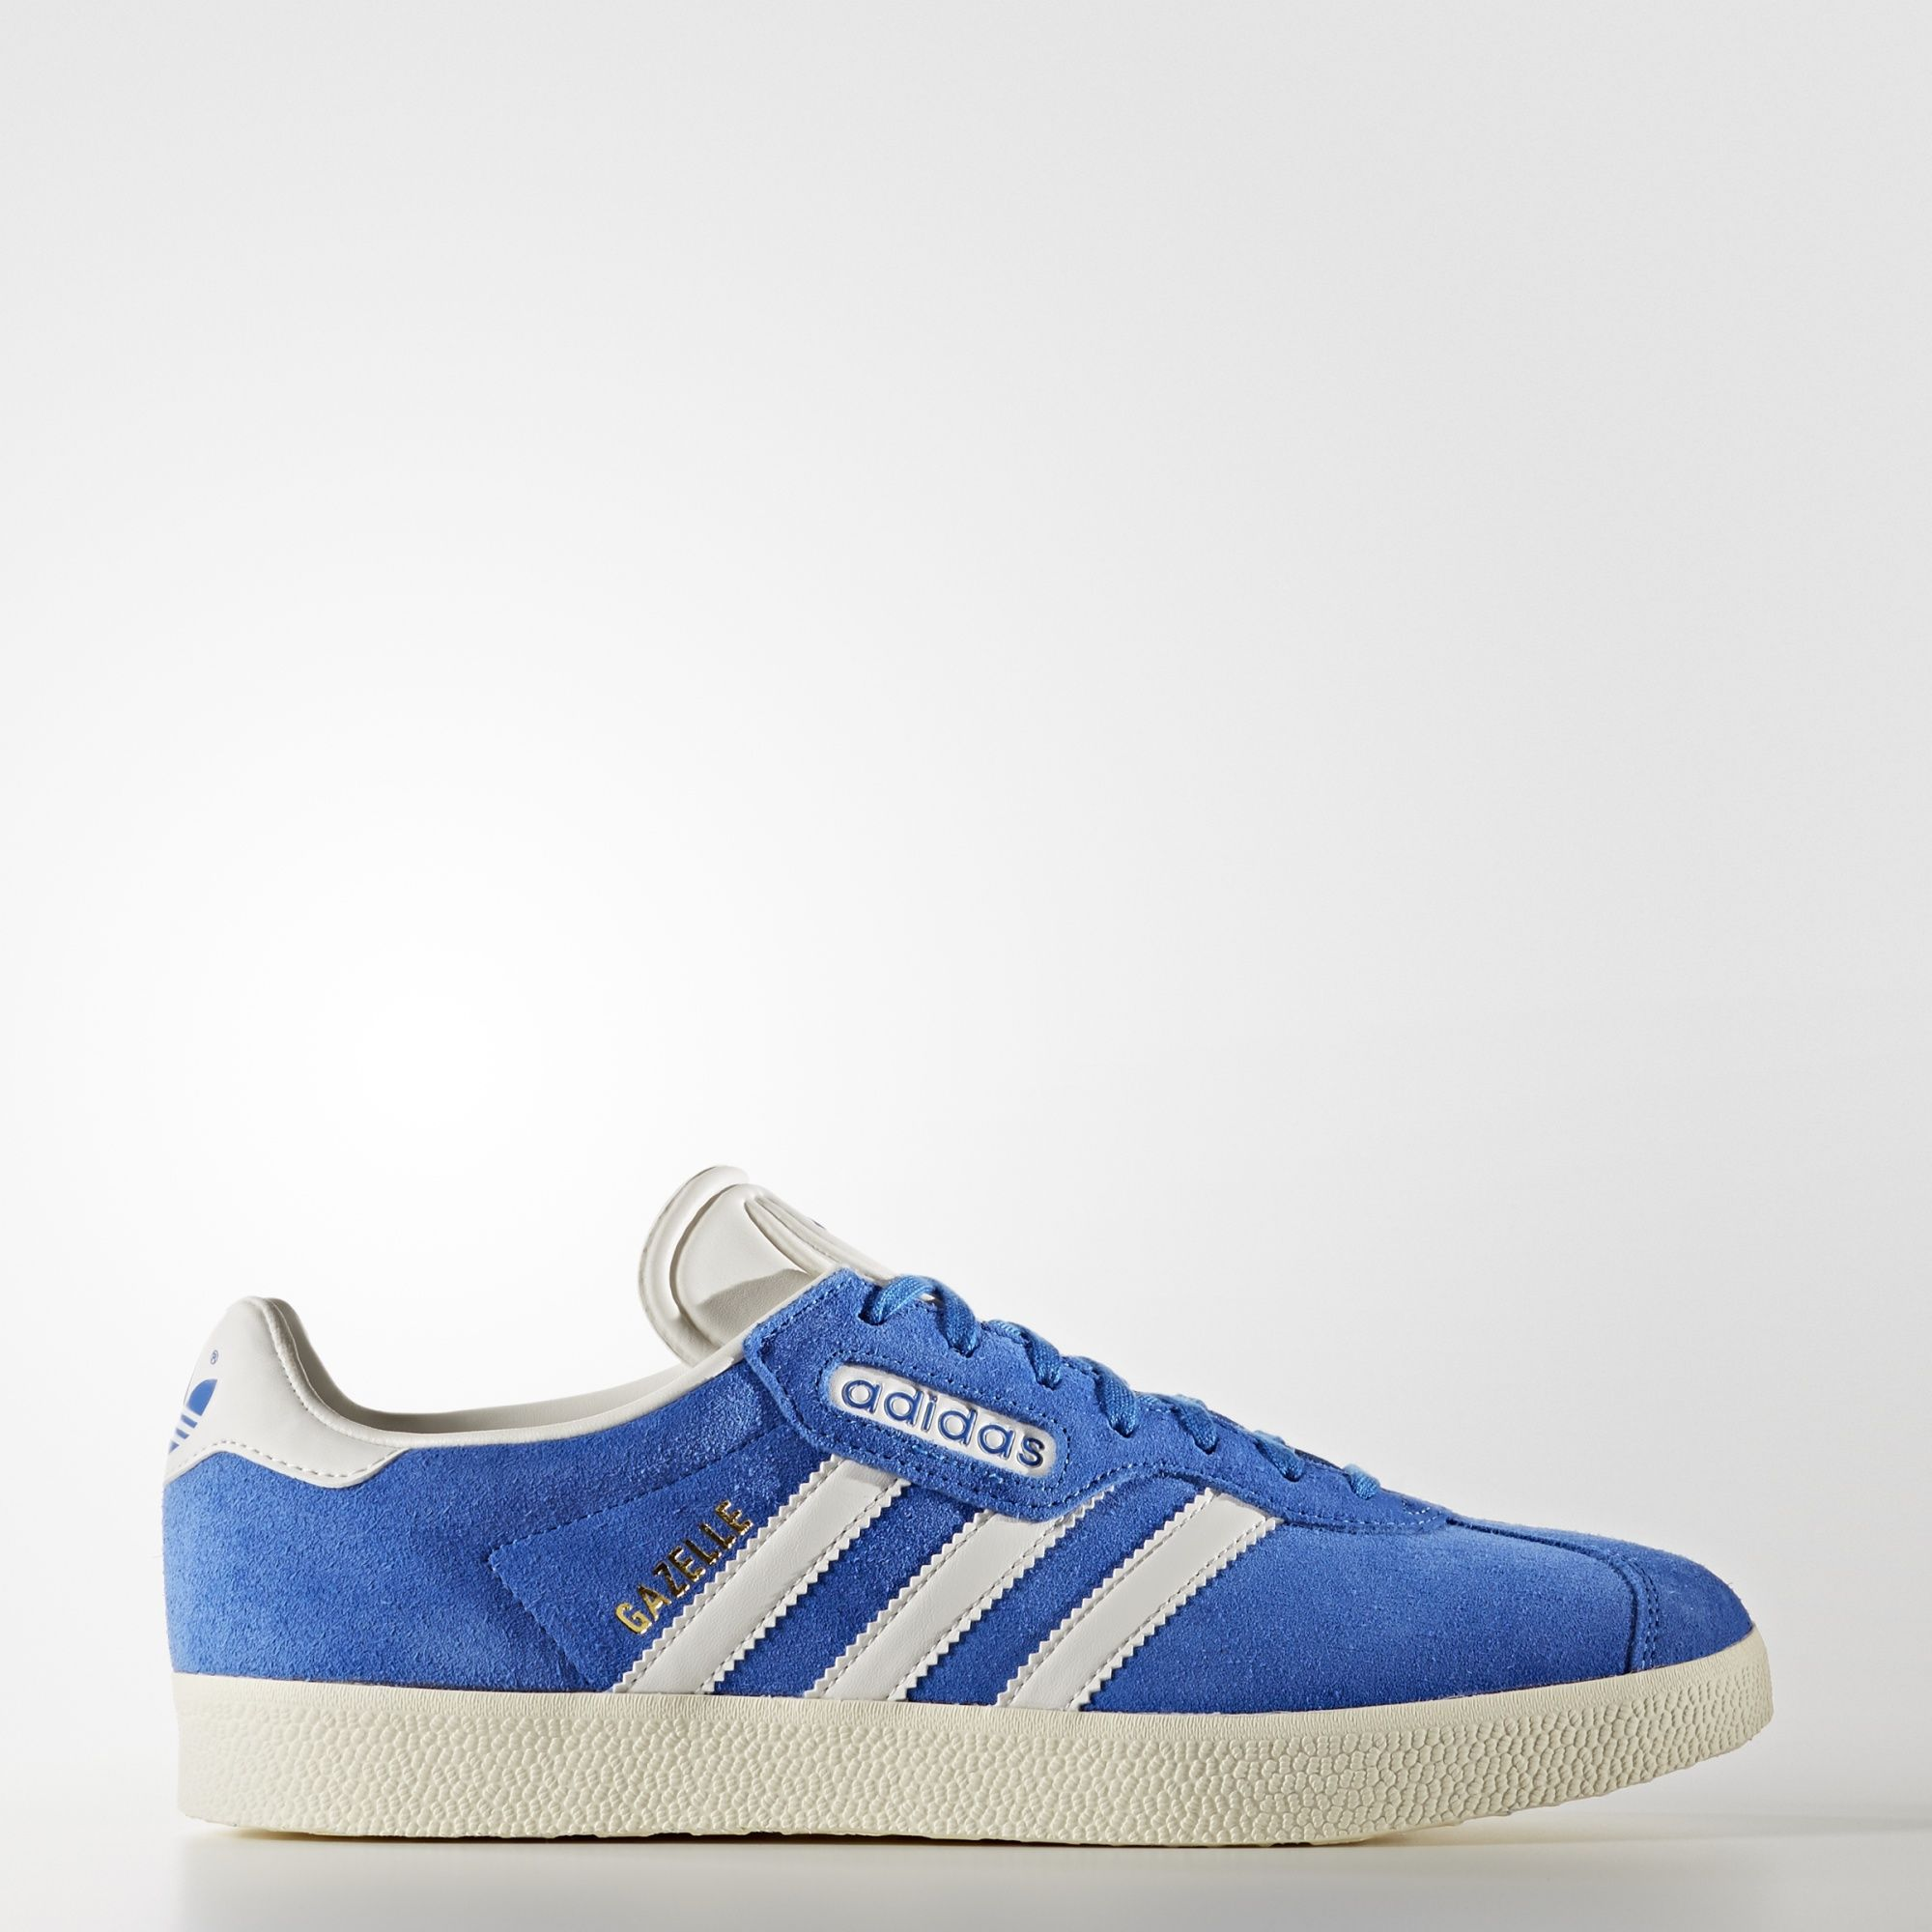 adidas - Gazelle Super Shoes